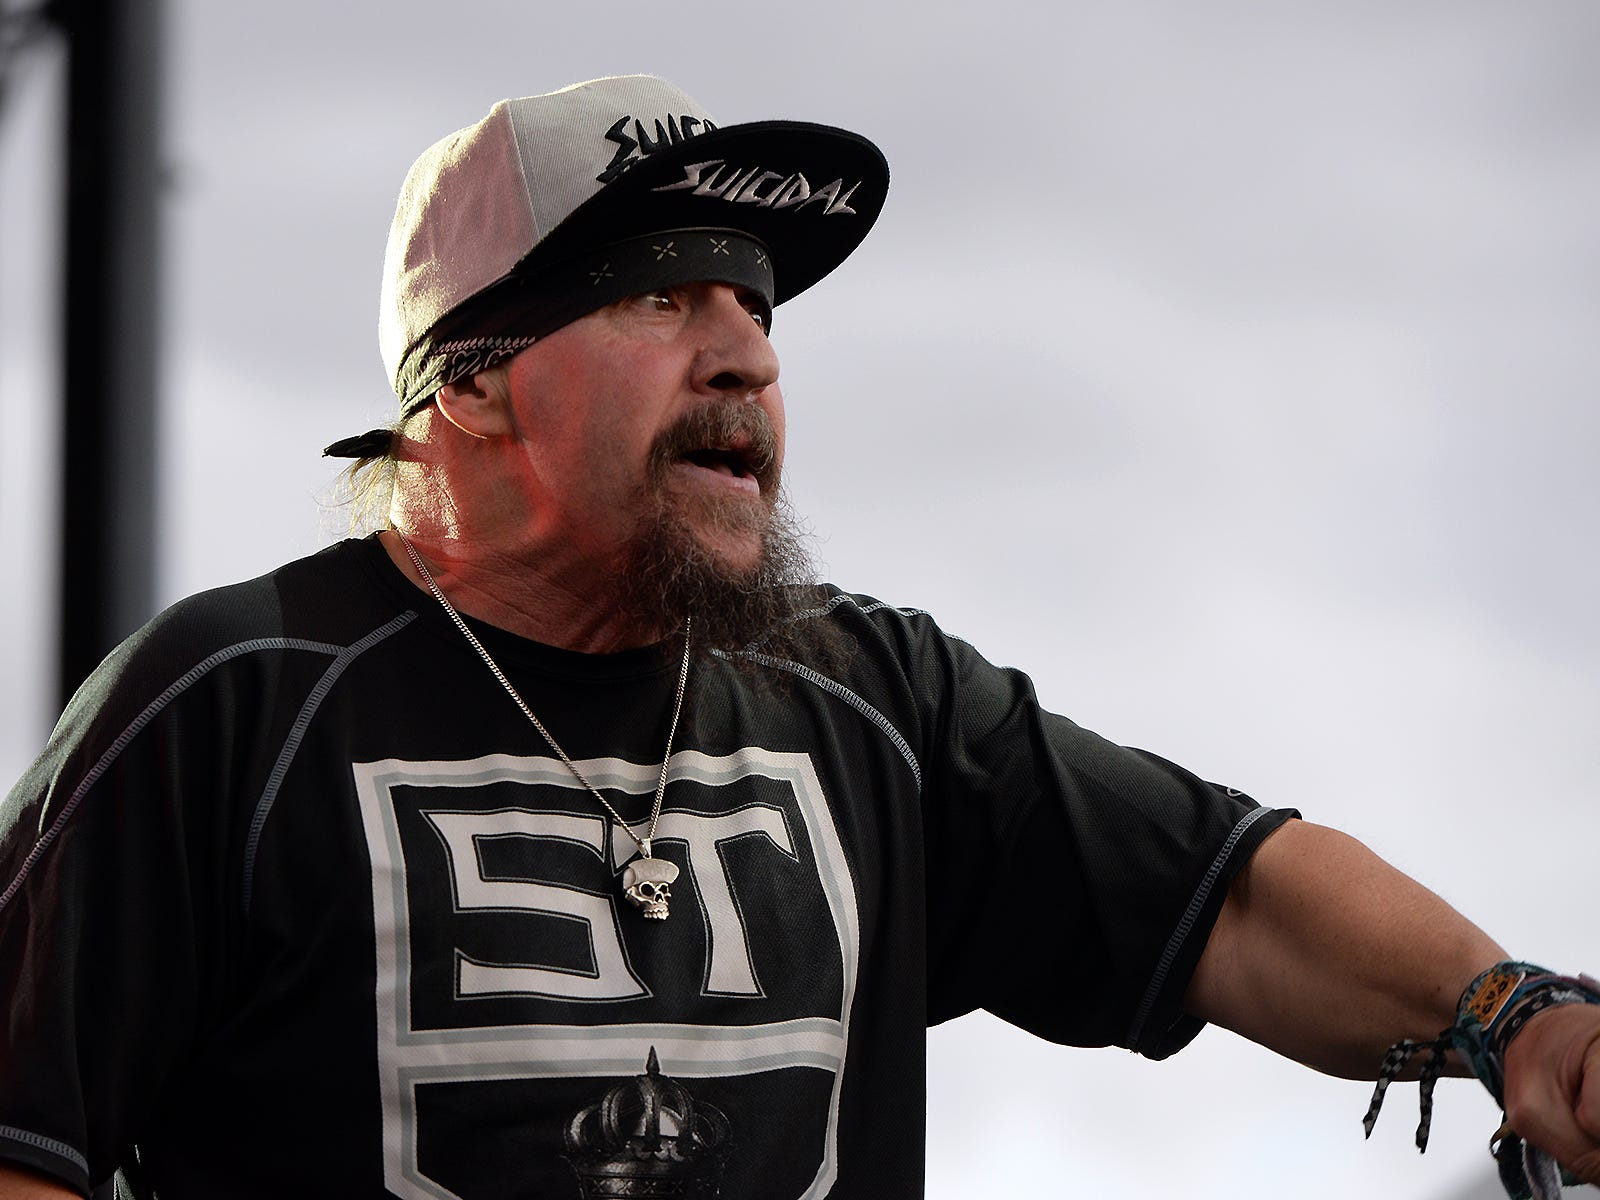 Suicidal Tendencies perform at Bash Festival in Phoenix, Ariz., on May 11, 2019.